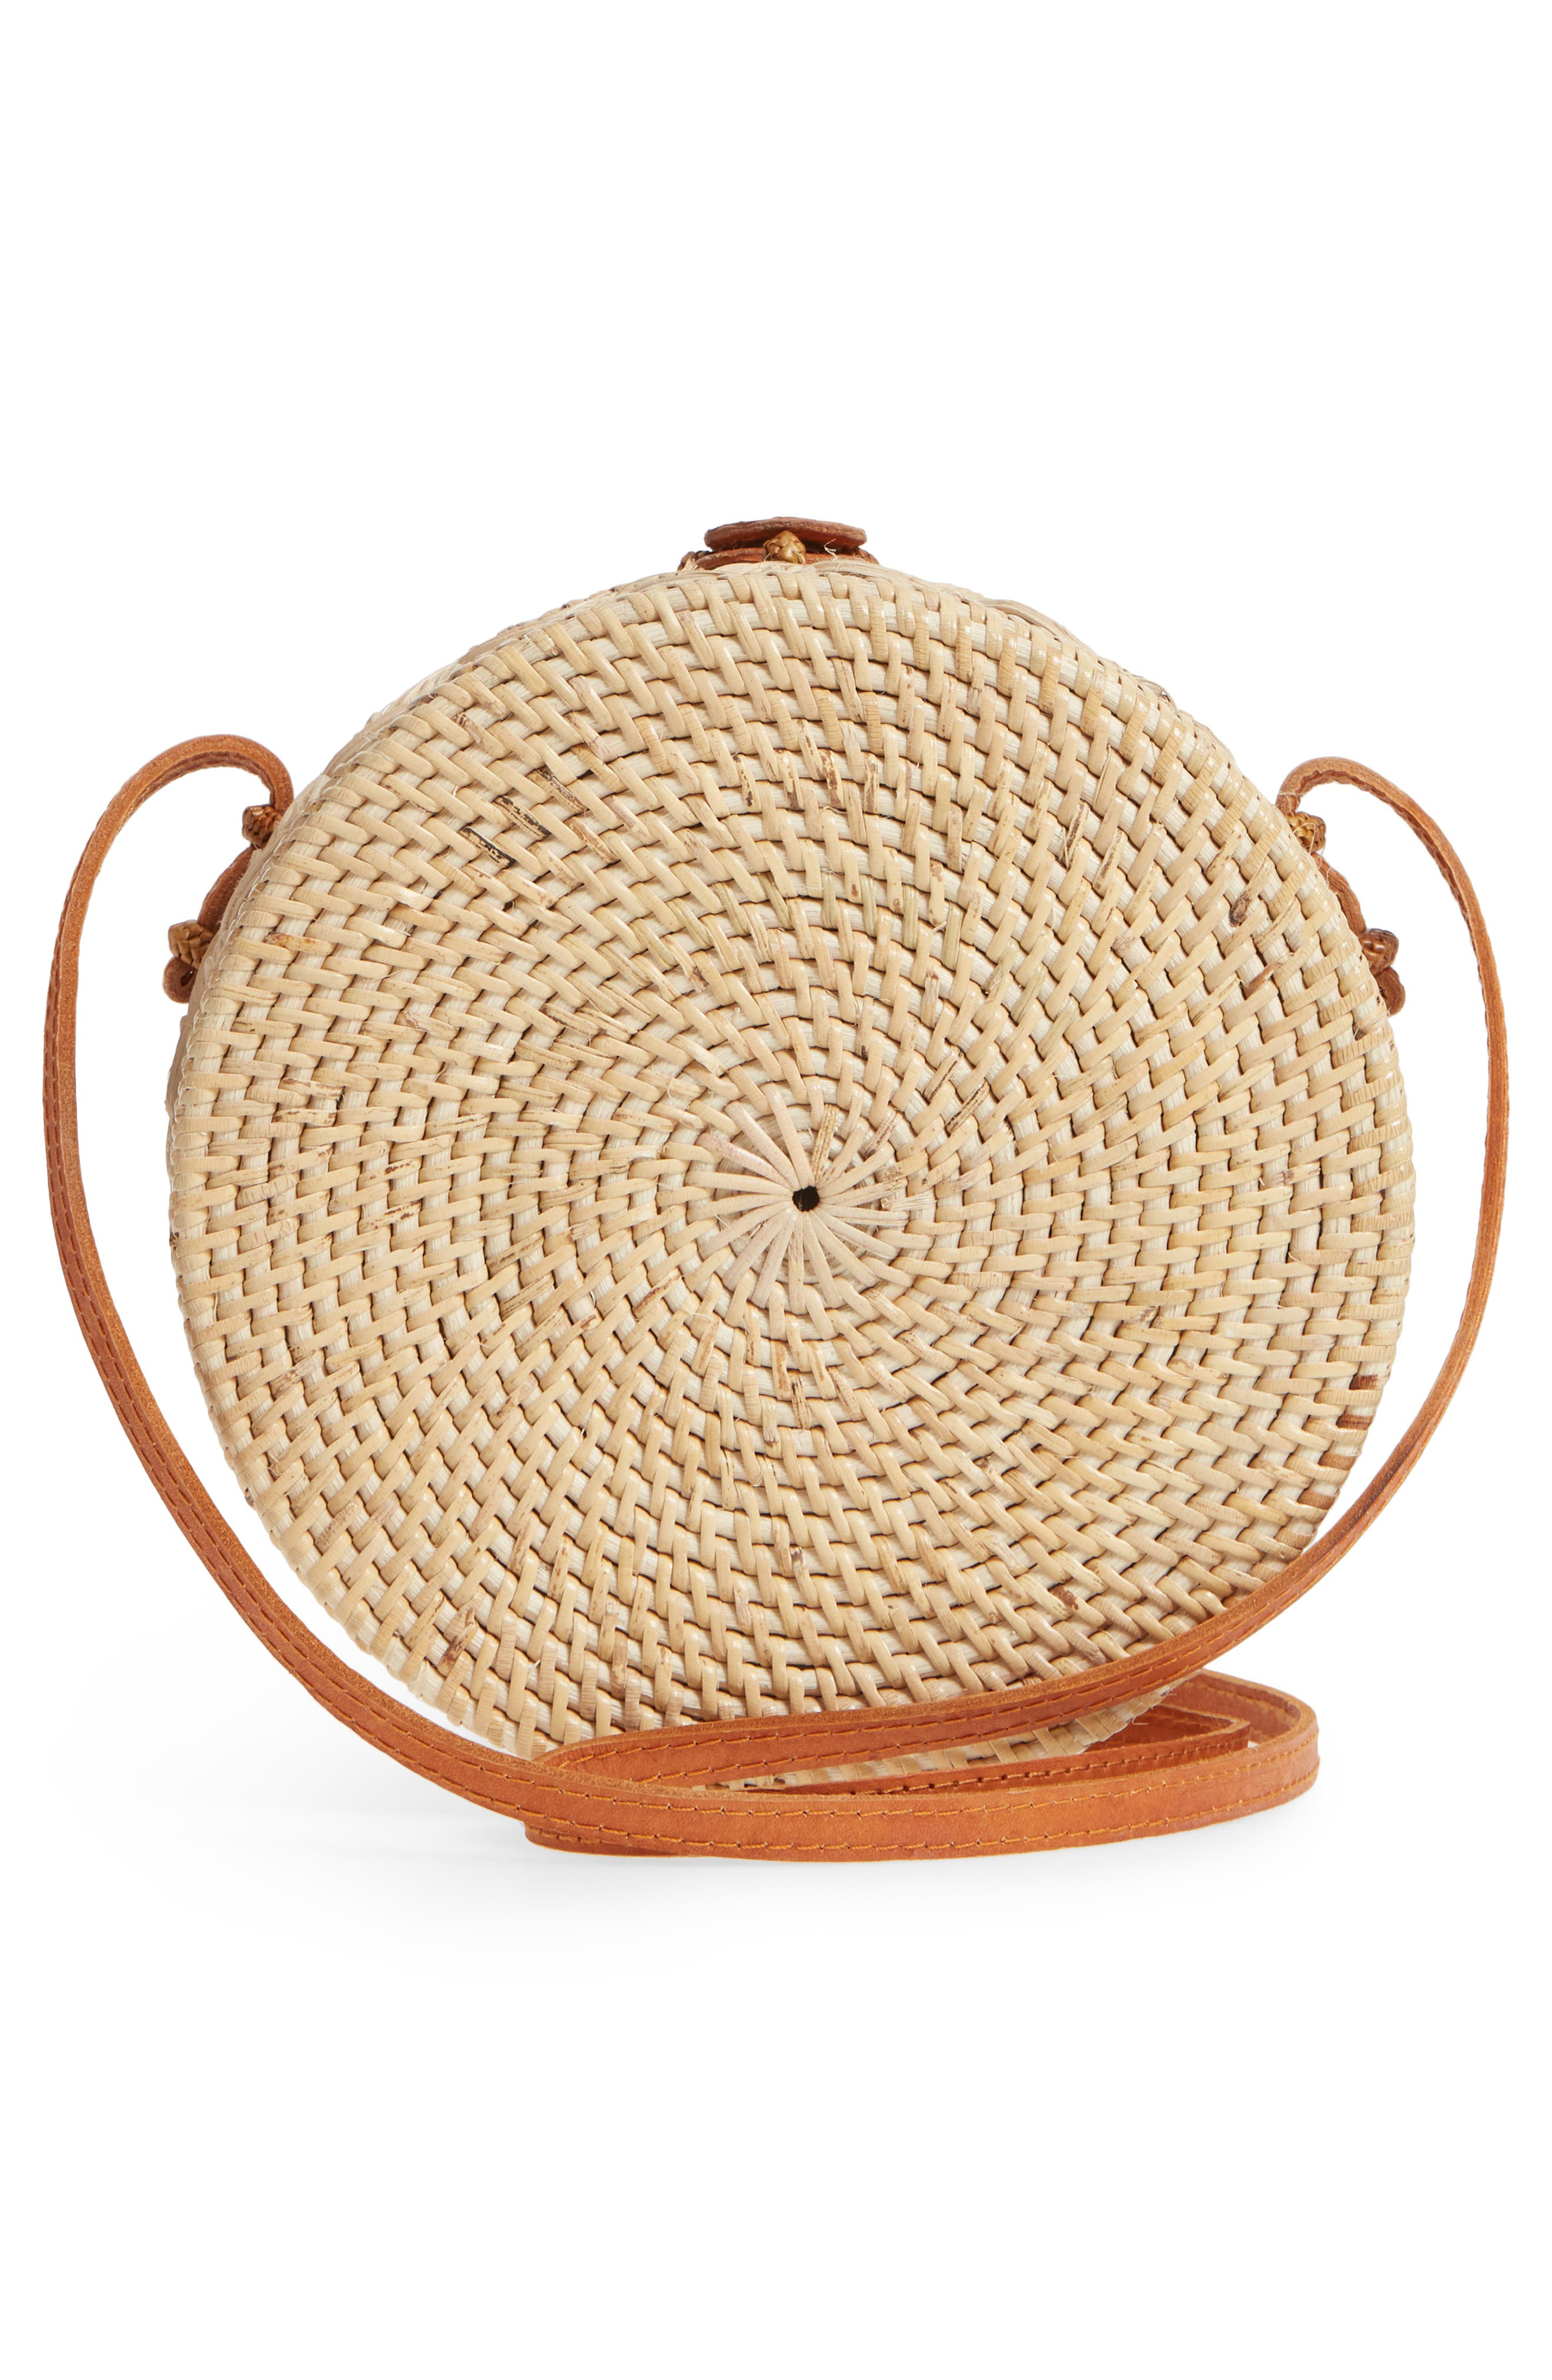 Woven Rattan Circle Crossbody Bag,                             Alternate thumbnail 3, color,                             LIGHTER TAN/ NATURAL